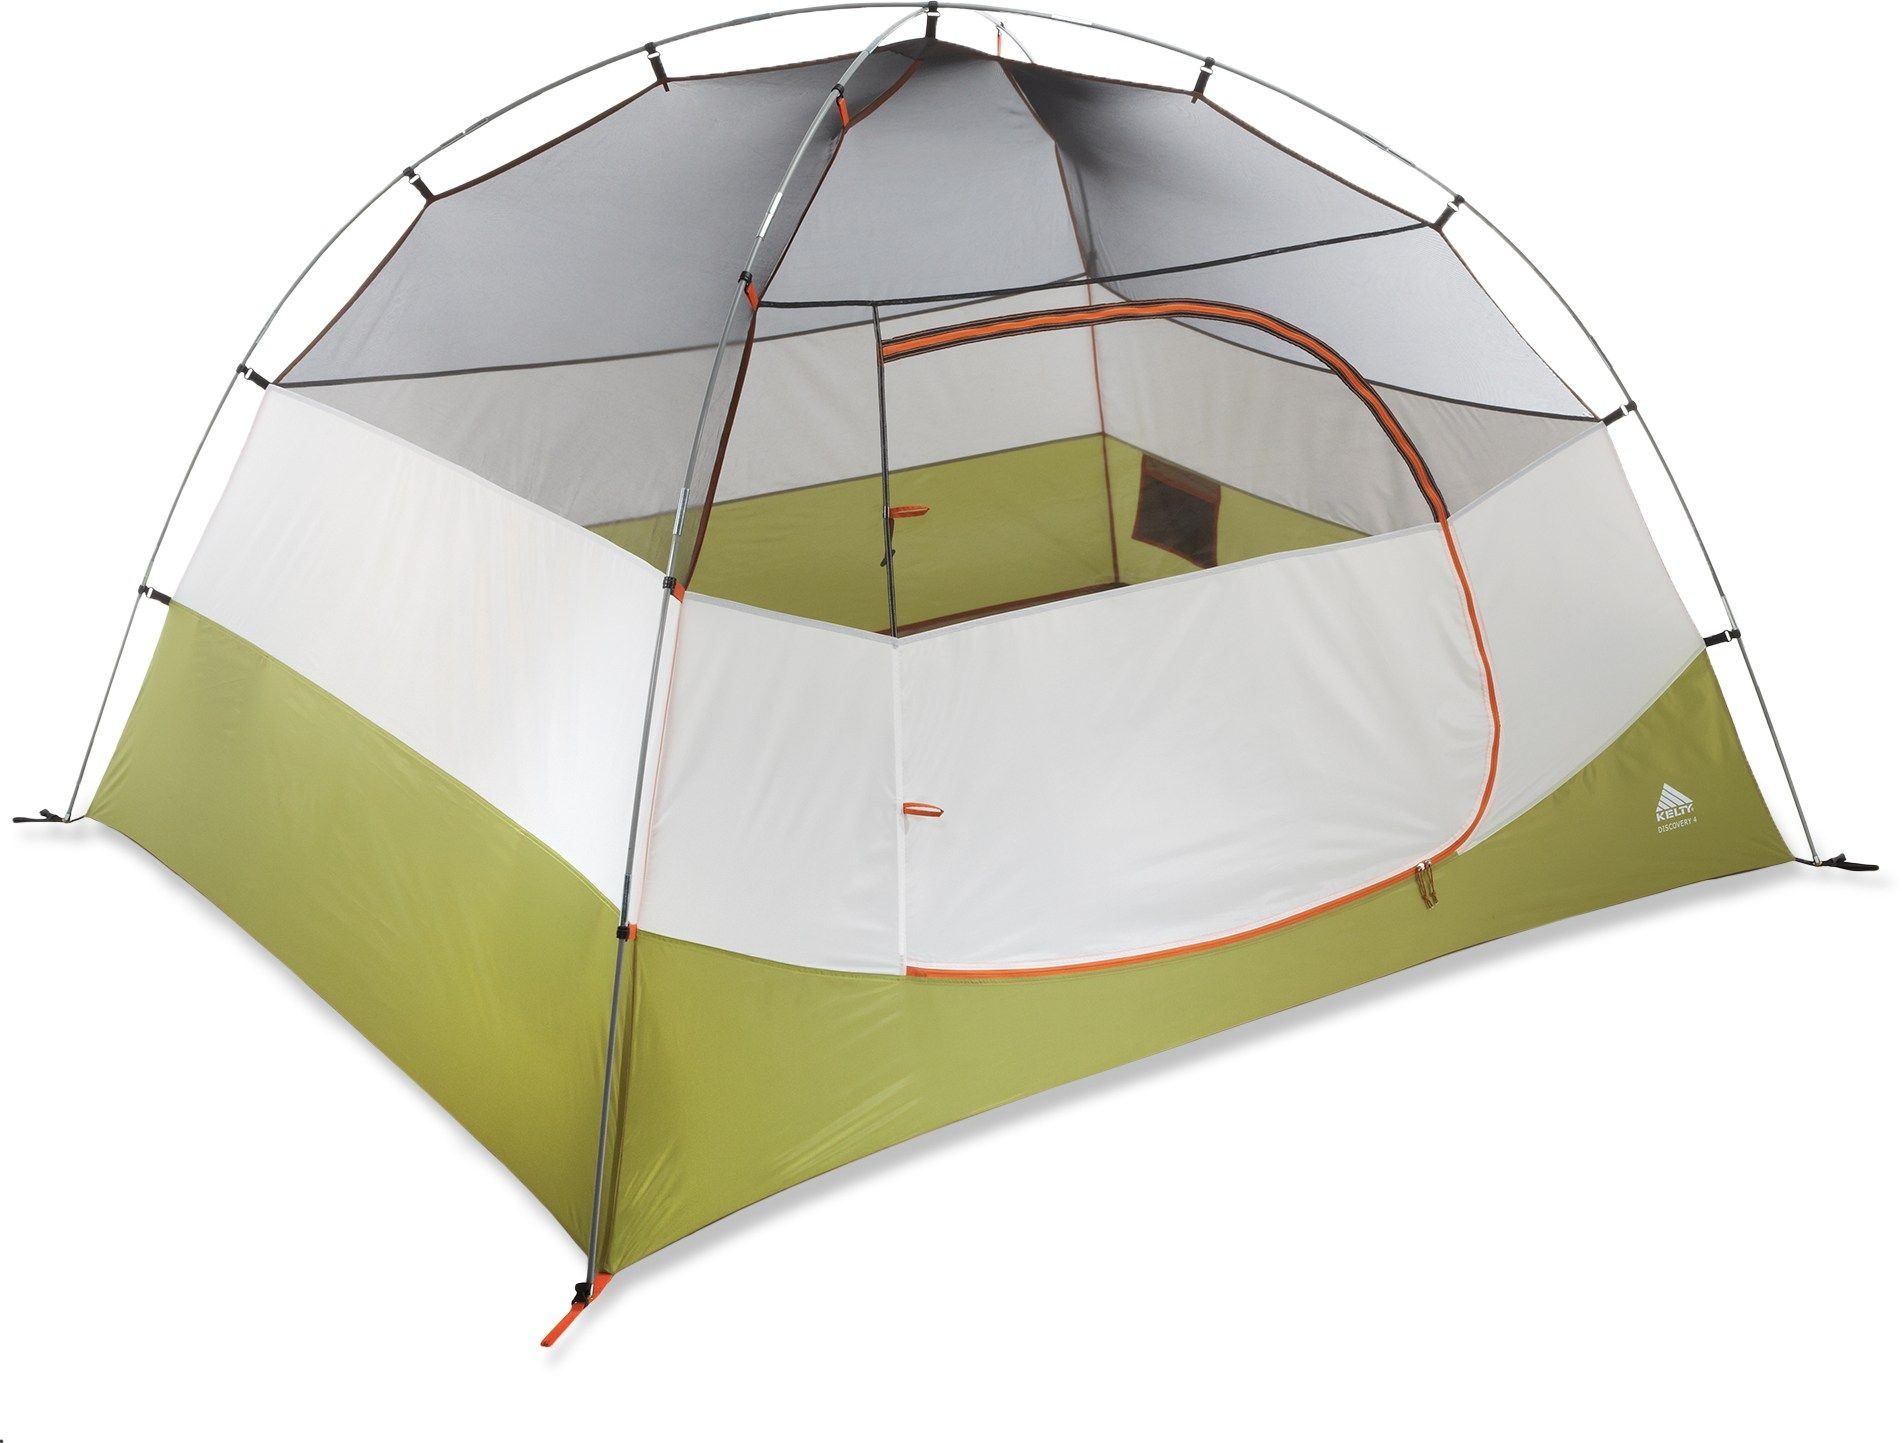 Kelty Discovery 4 Tent - REI.com  sc 1 st  Pinterest & Kelty Discovery 4 Tent Grey/Orange | Tents